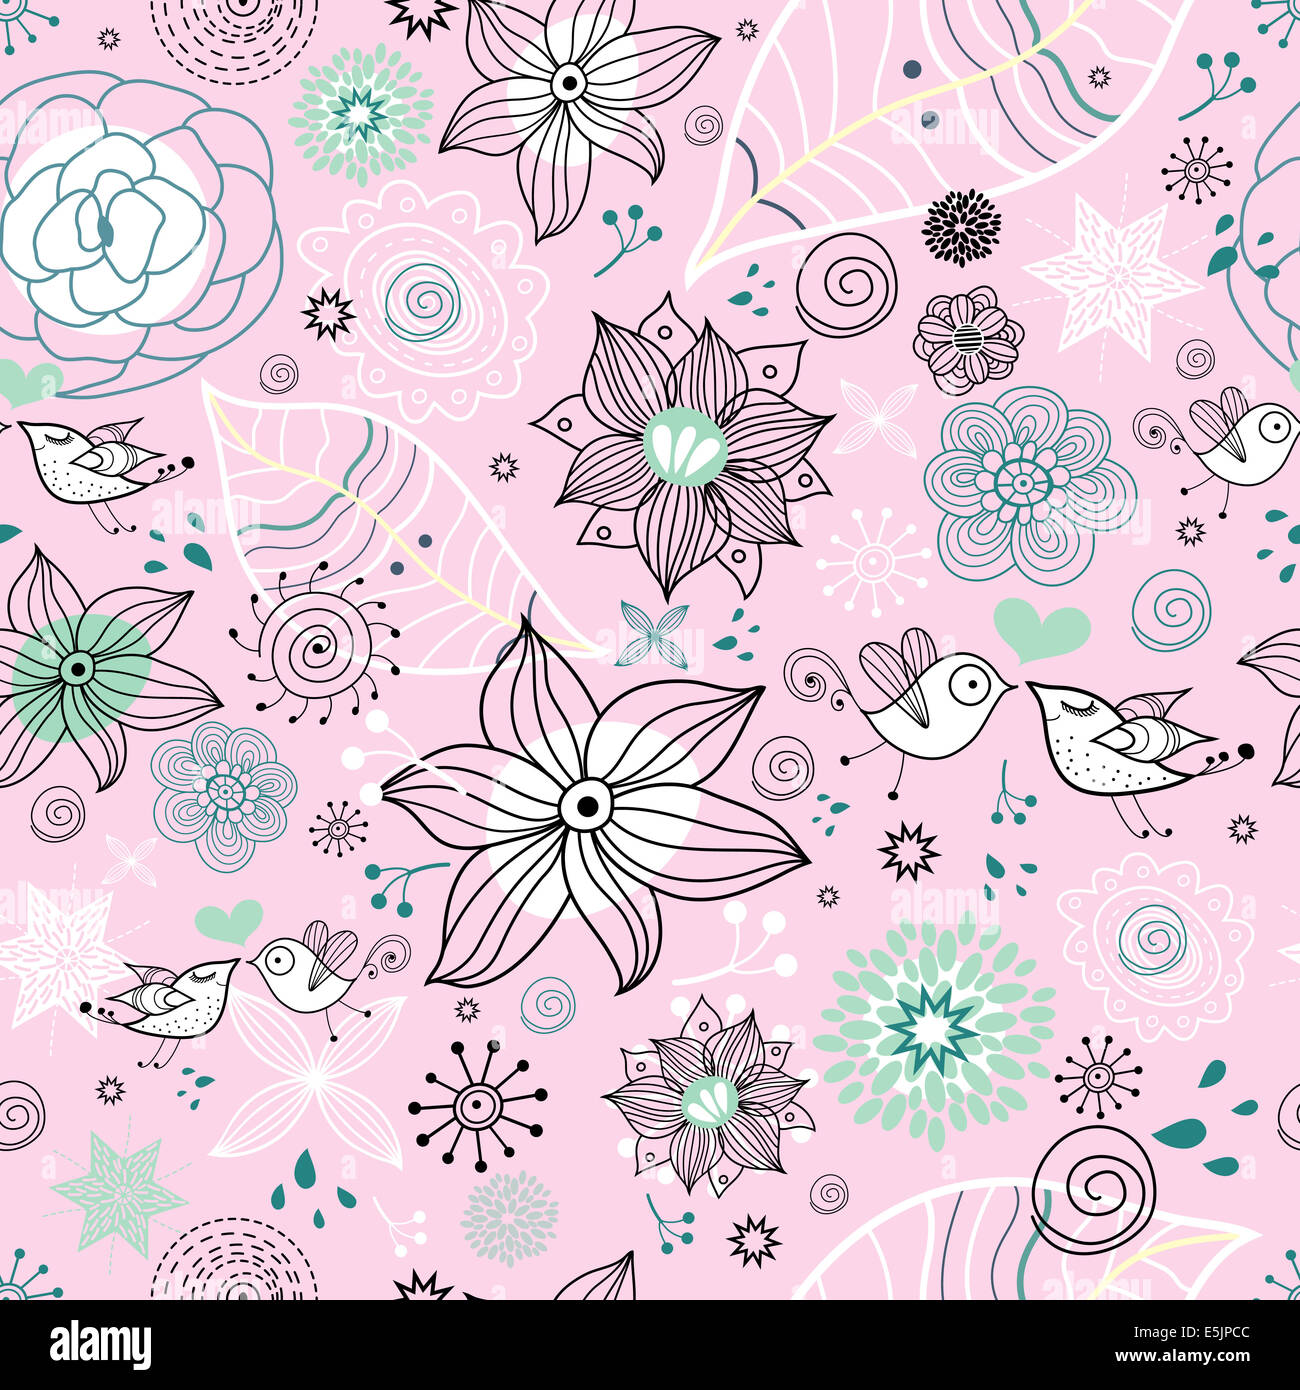 Flowers rose outline drawing vector stock photos flowers rose beautiful designs of flowers and birds stock image izmirmasajfo